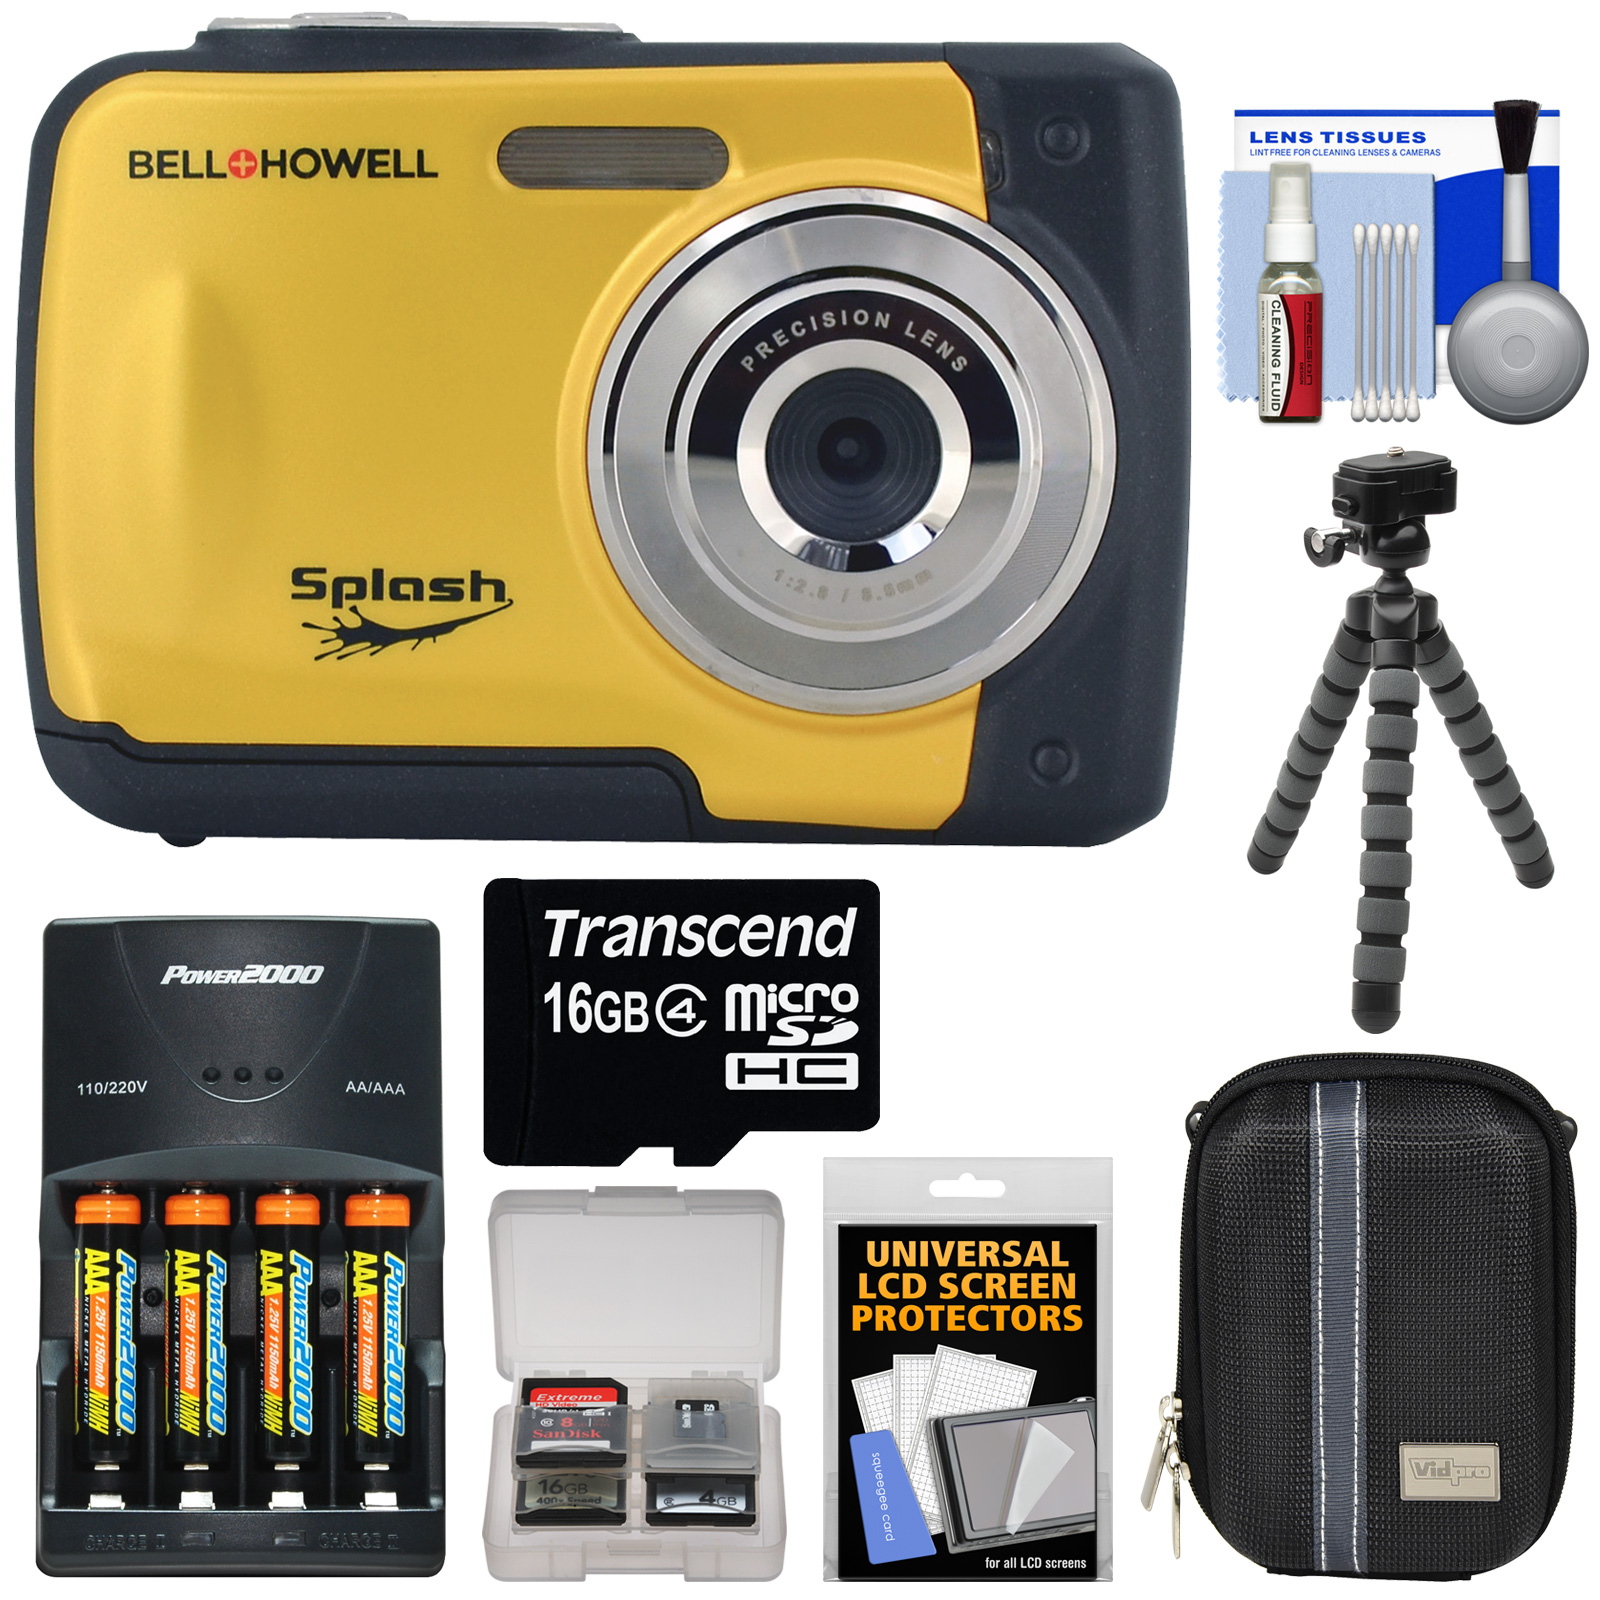 Bell & Howell Splash WP10 Shock & Waterproof Digital Camera (Yellow) with 16GB Card + Batteries & Charger + Case + Flex Tripod + Kit